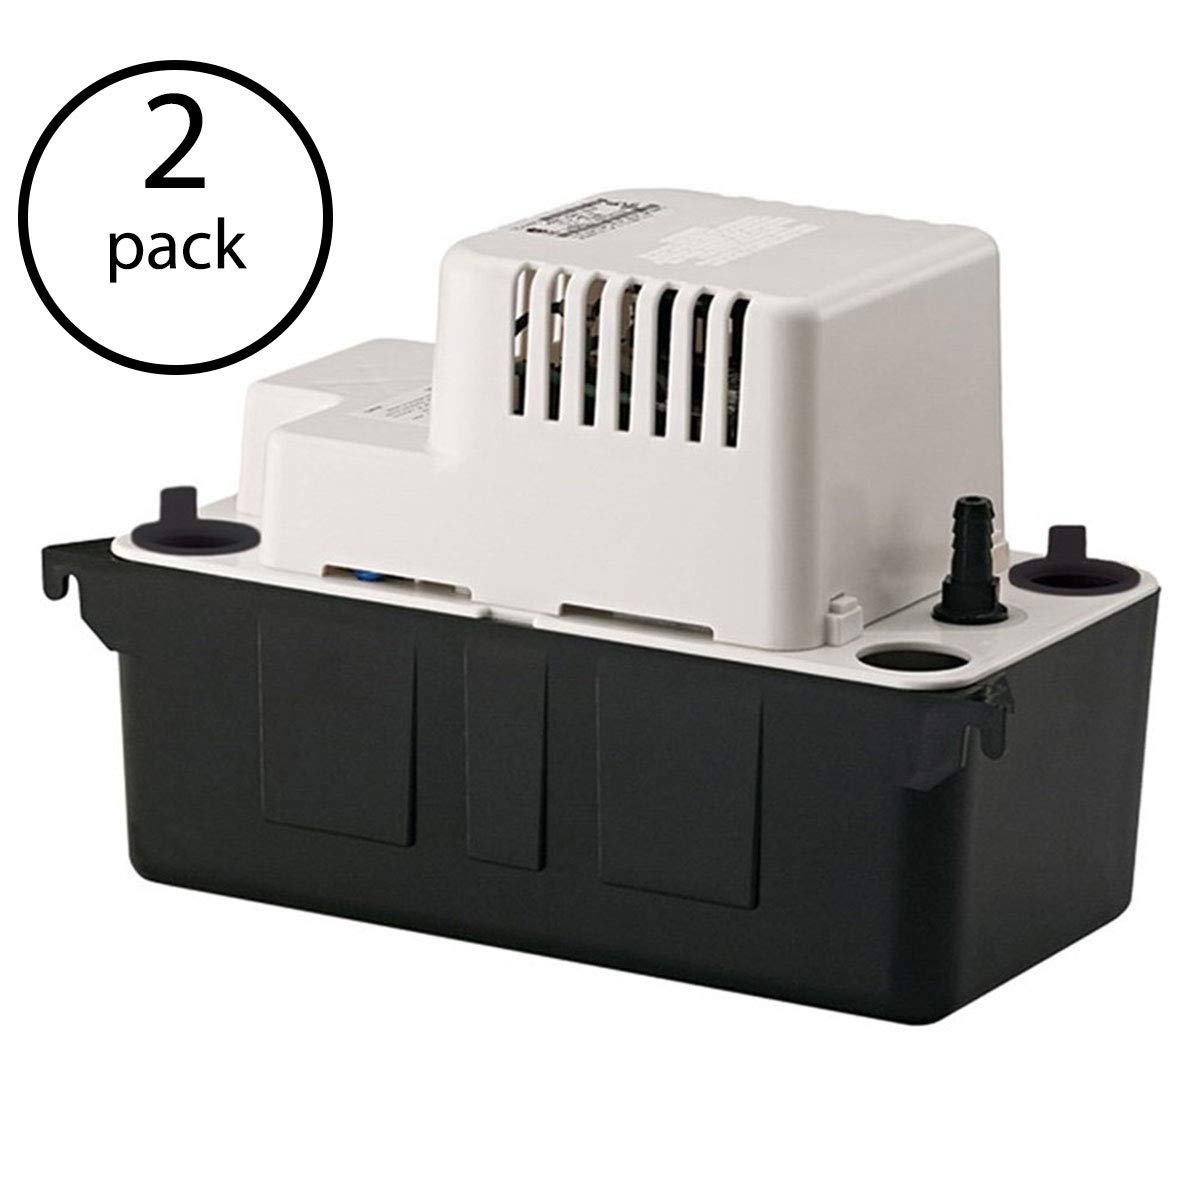 Little Giant VCMA-20ULS 1/30 HP 1/2 ABS Gallon Tank Condensate Removal Pump (2 Pack) by Little Giant